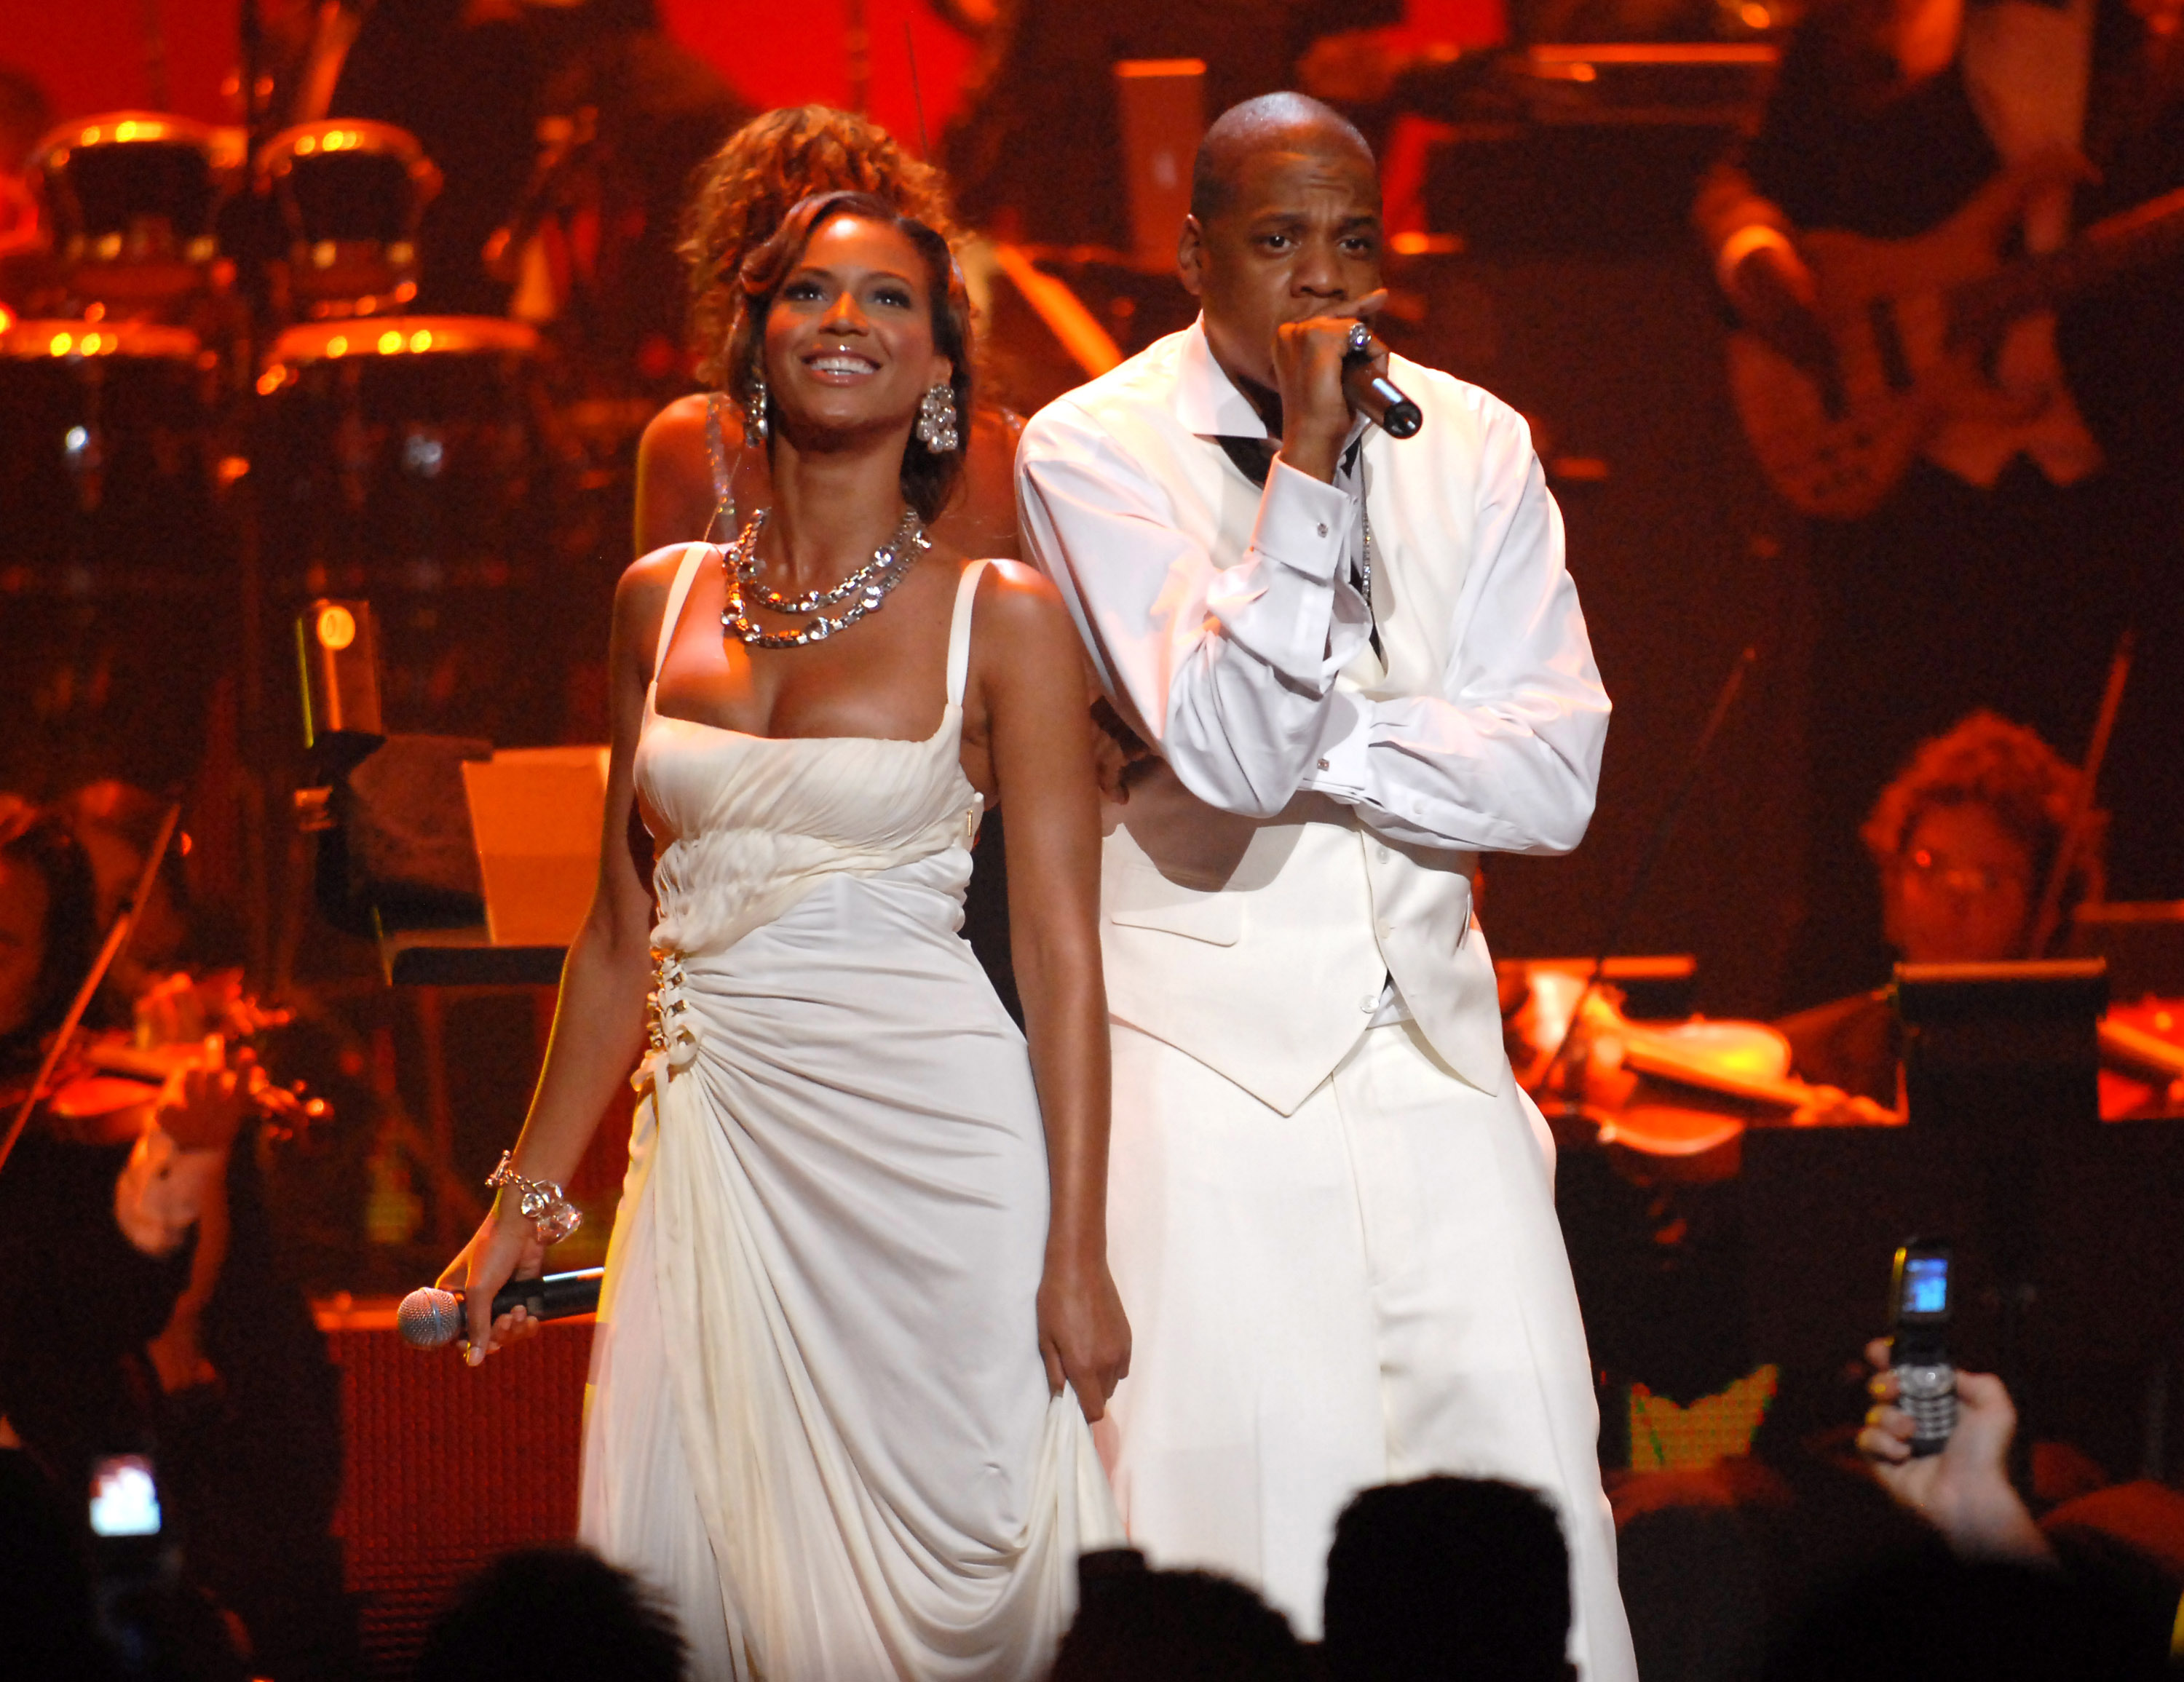 Beyonce Knowles and Jay-Z at the Radio City Music Hall in New York City (Photo by Kevin Mazur/WireImage)